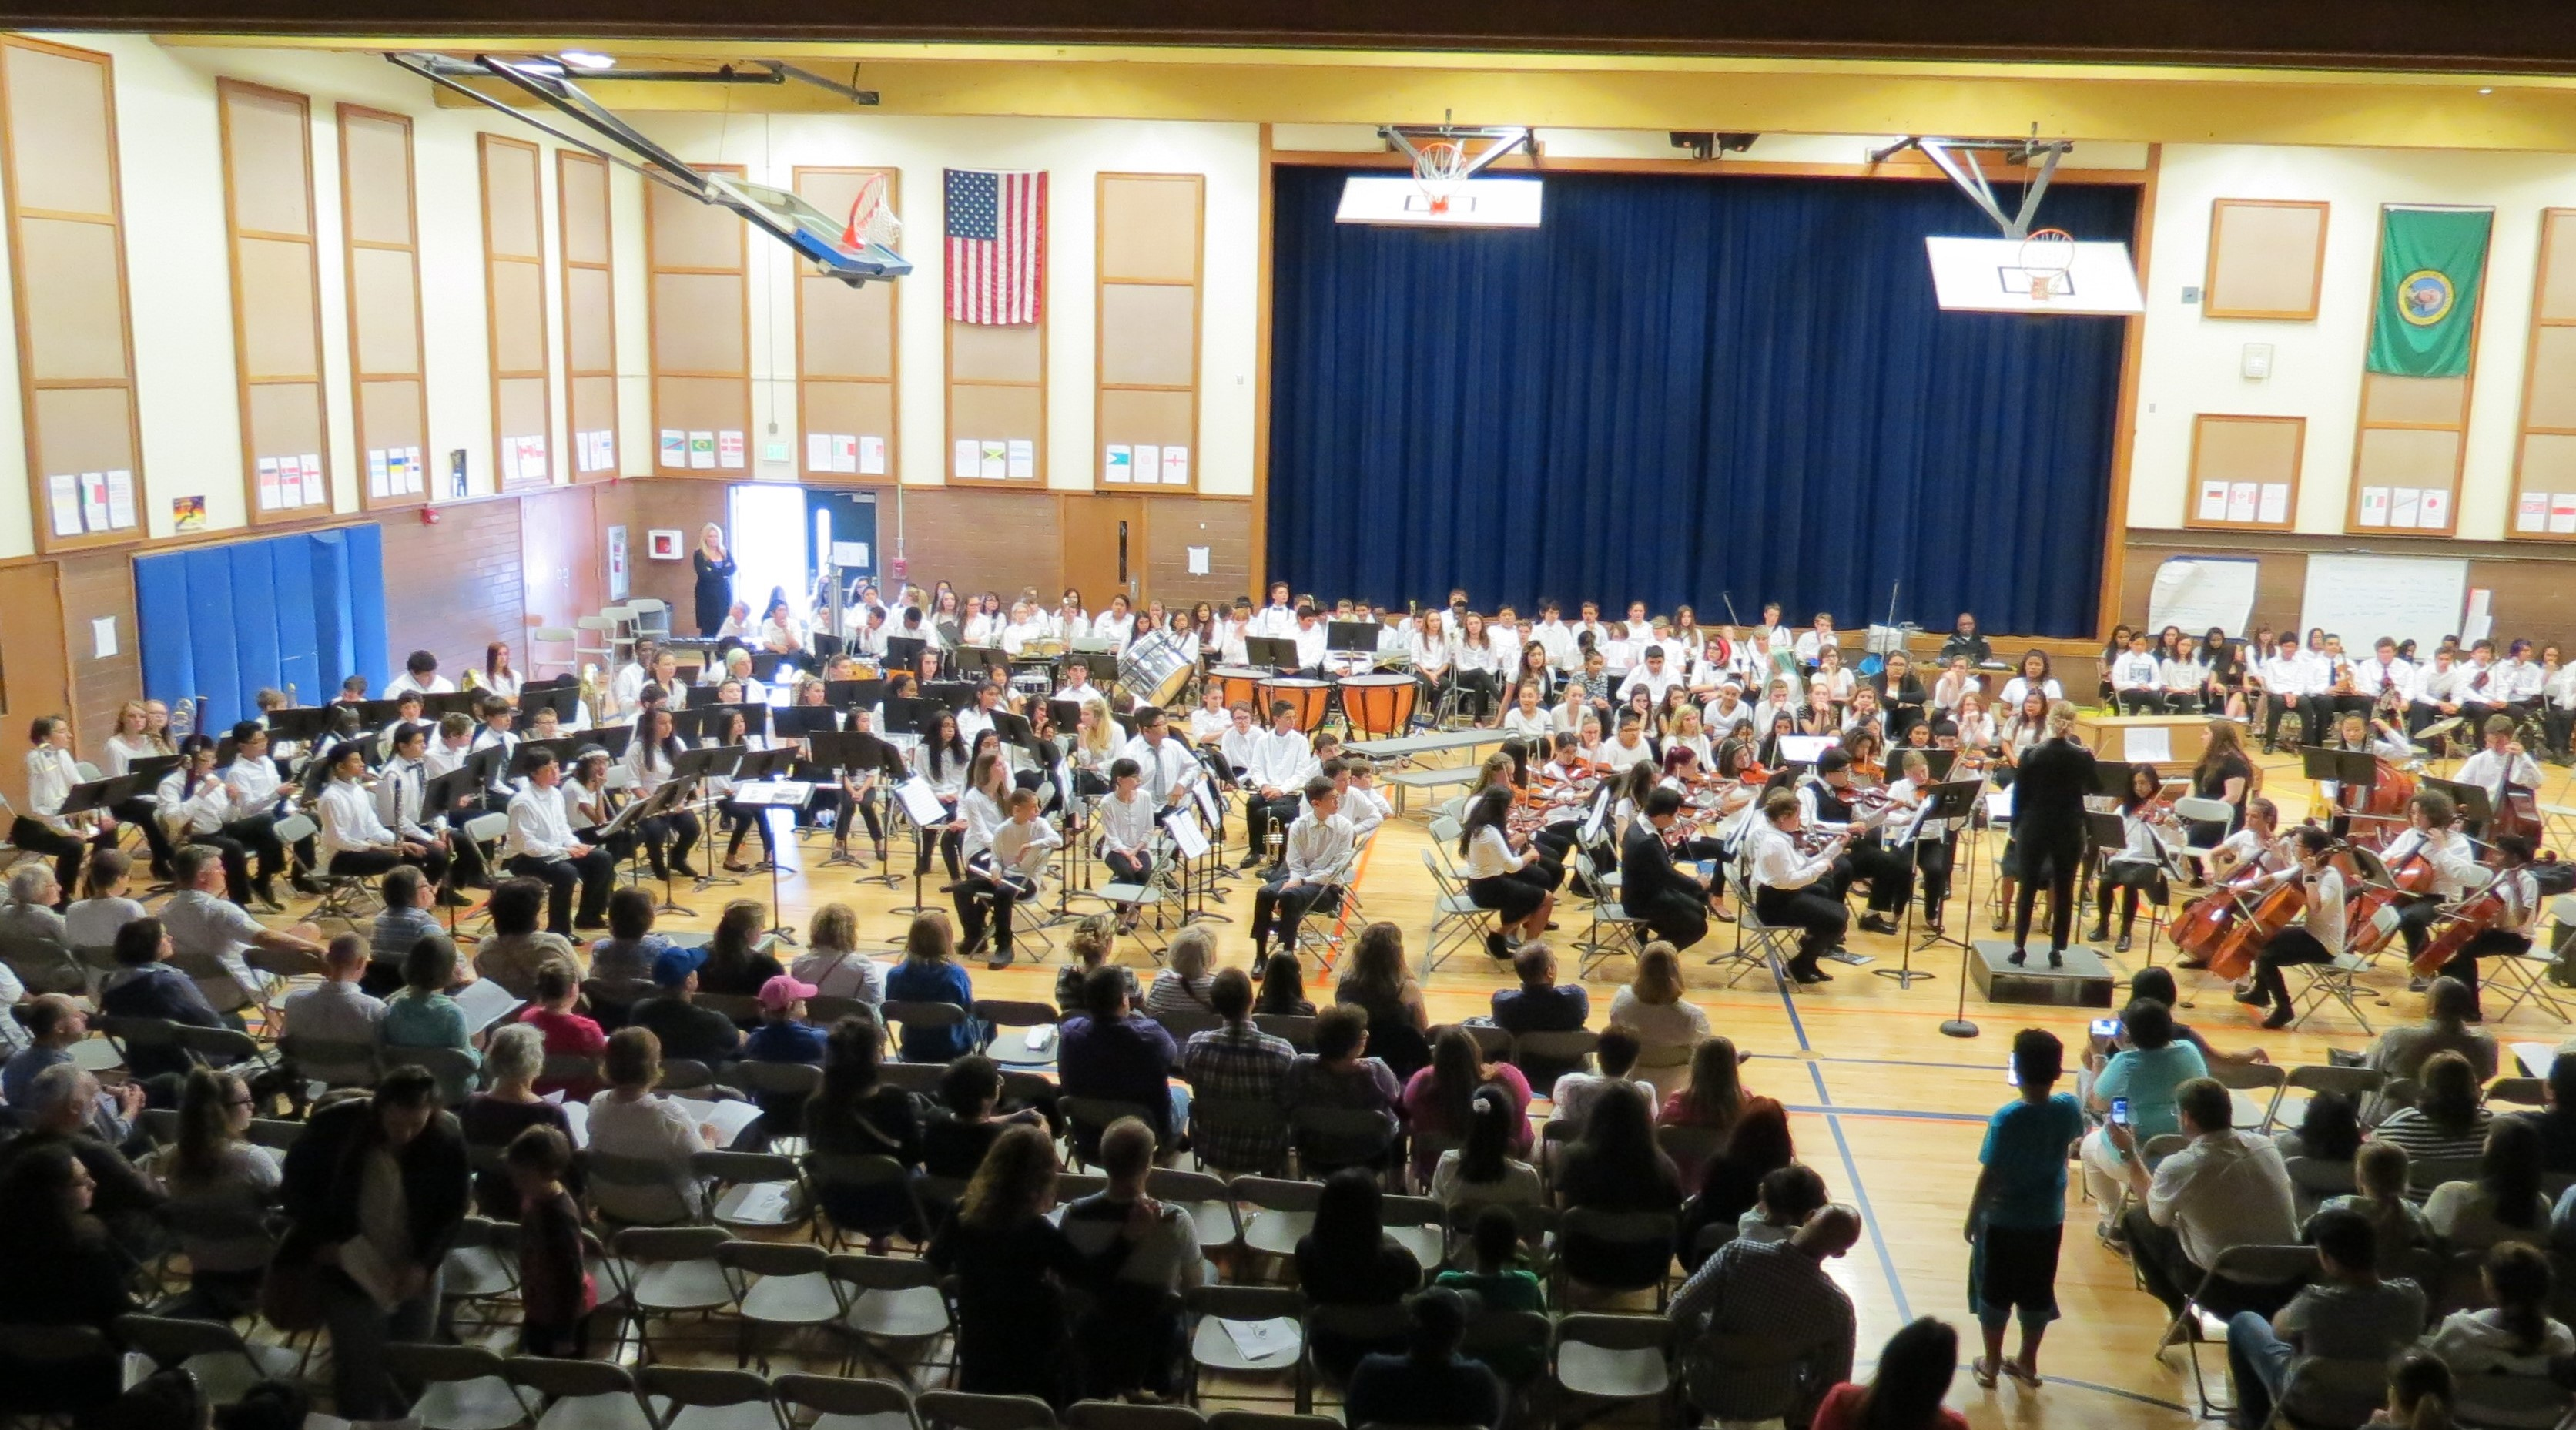 7th grade concert band l and orchestra r college place middle school lynnwood